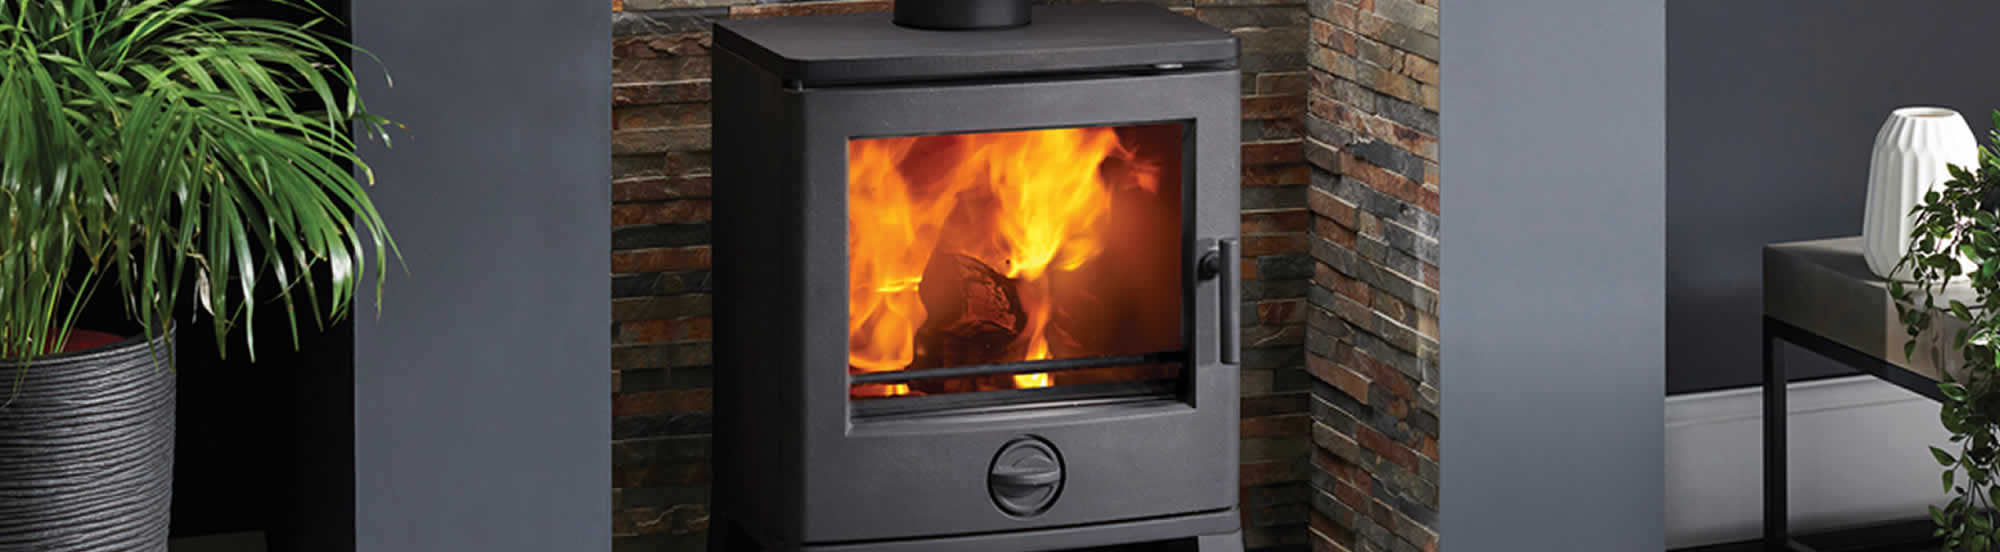 Capital Fireplaces At The FireBox Deal Kent